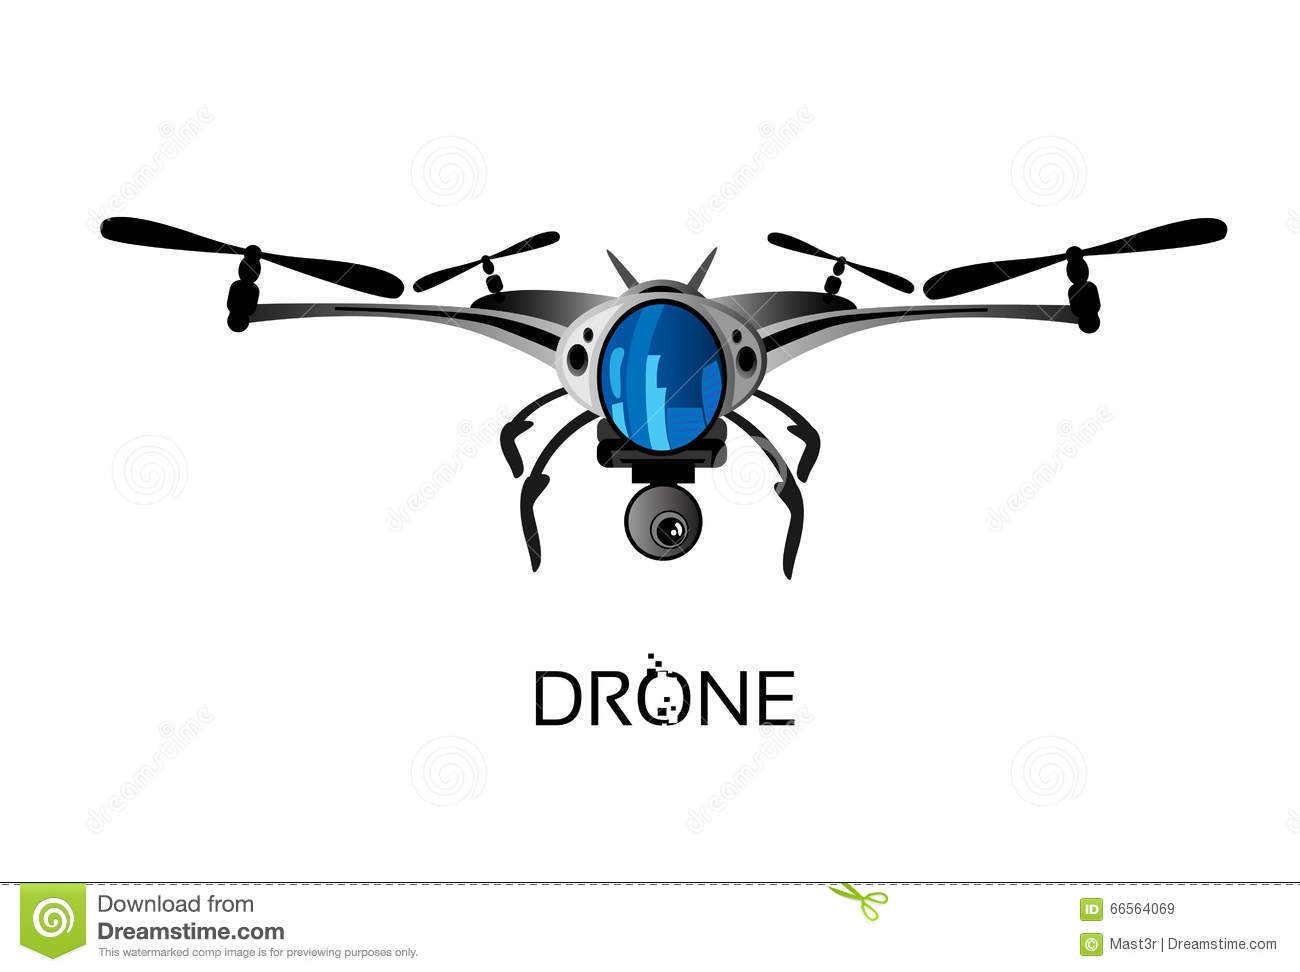 remote drone with spy camera with Stock Illustration Drone Flying Air Quadrocopter Logo Icon Vector Illustration Image66564069 on 2013 04 01 archive besides Black hor  nano also Los Drones Mas Pequenos Del Mundo additionally 24 together with Filing To Faa On Drones Model Aircraft.